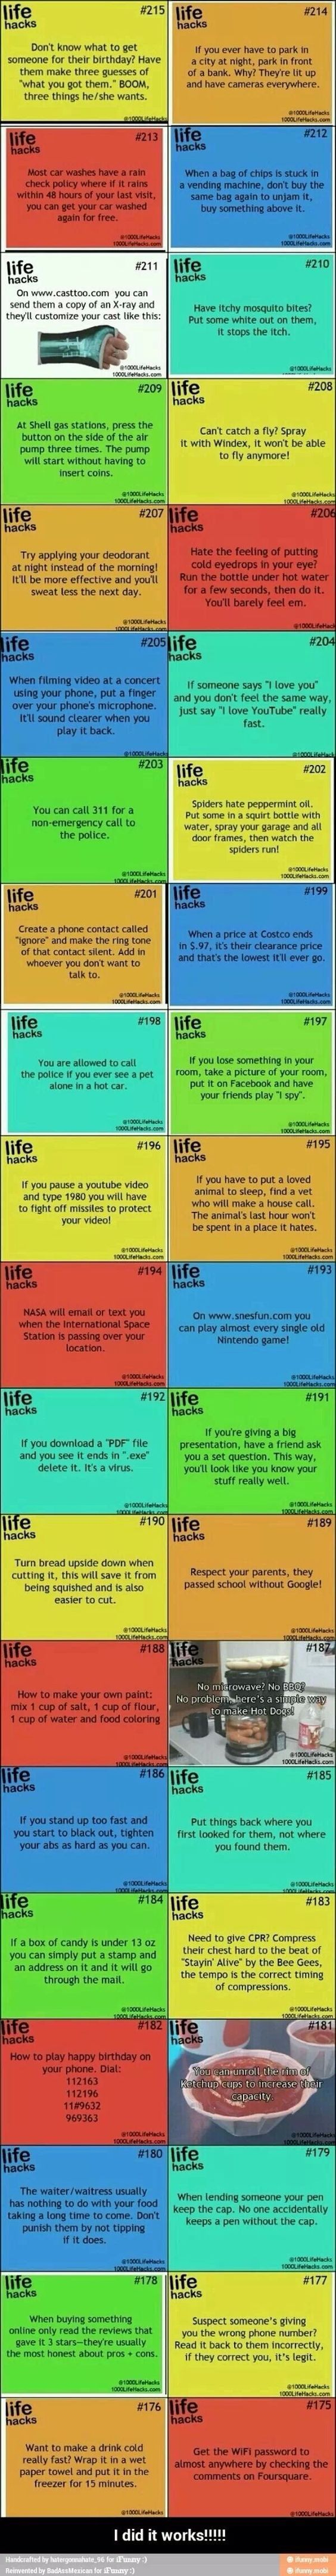 The best life hack list. I especially like the birthday gift idea & playing I-spy to find something you lost in your room.